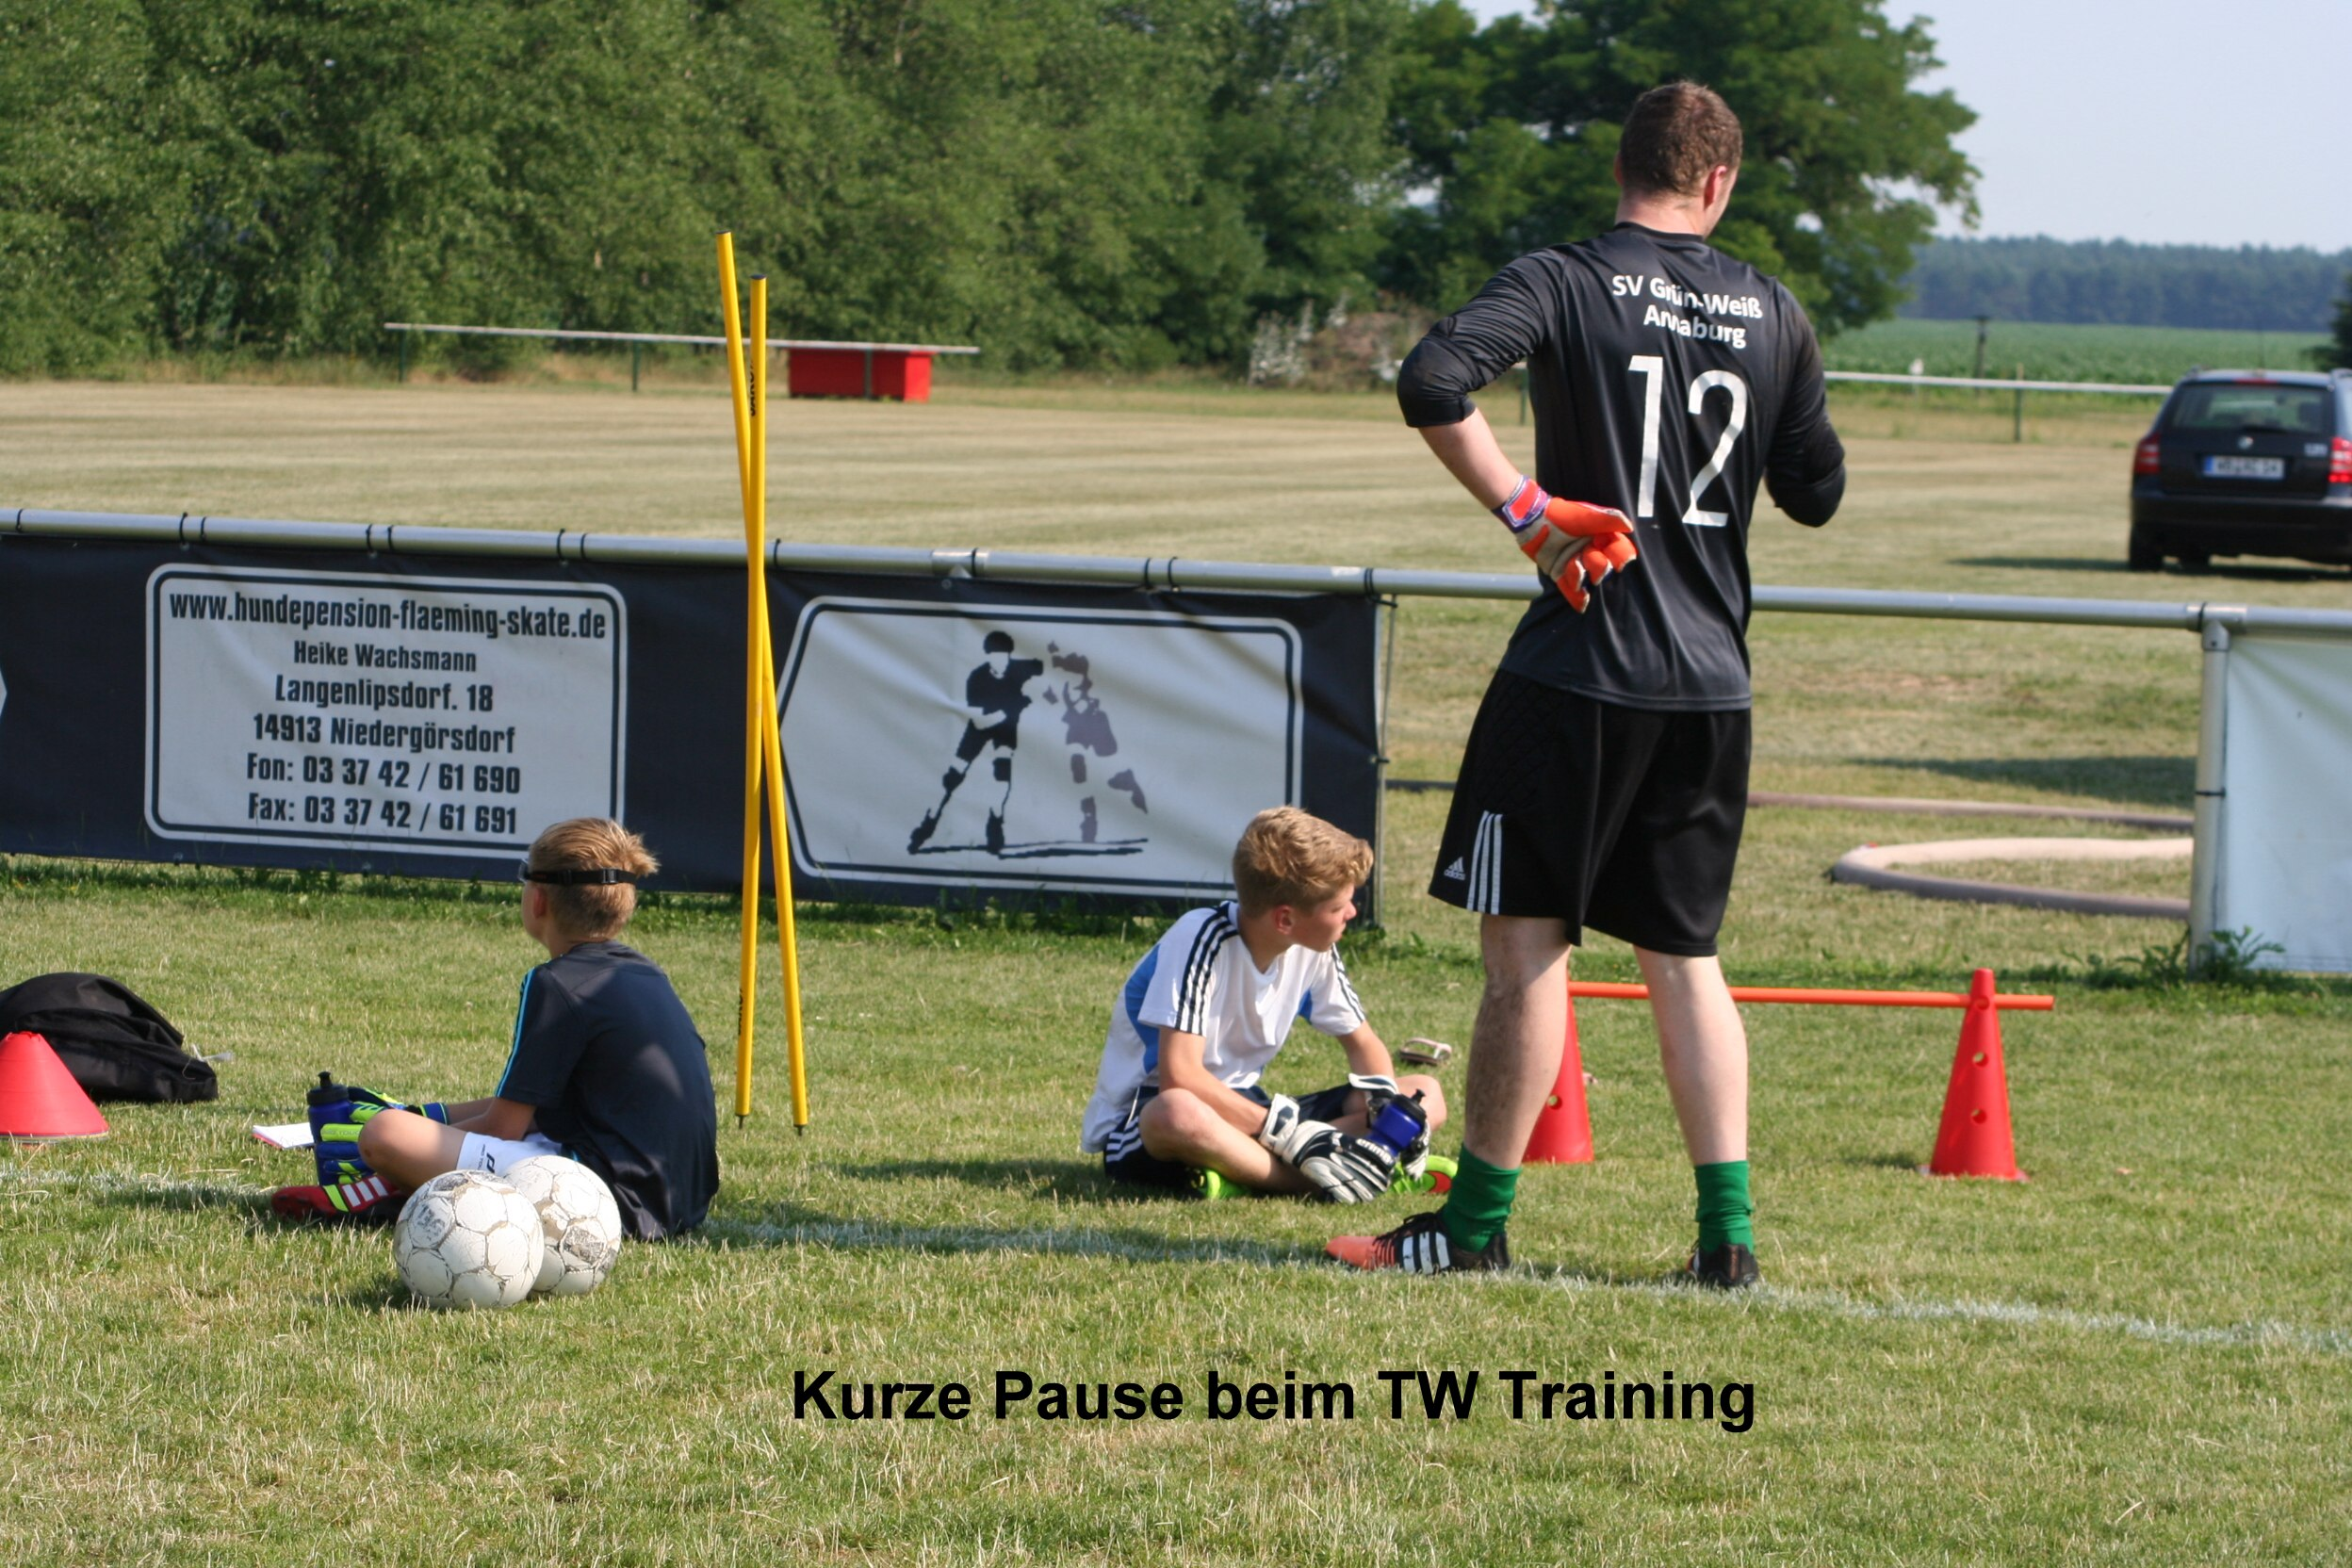 pausetwtraining